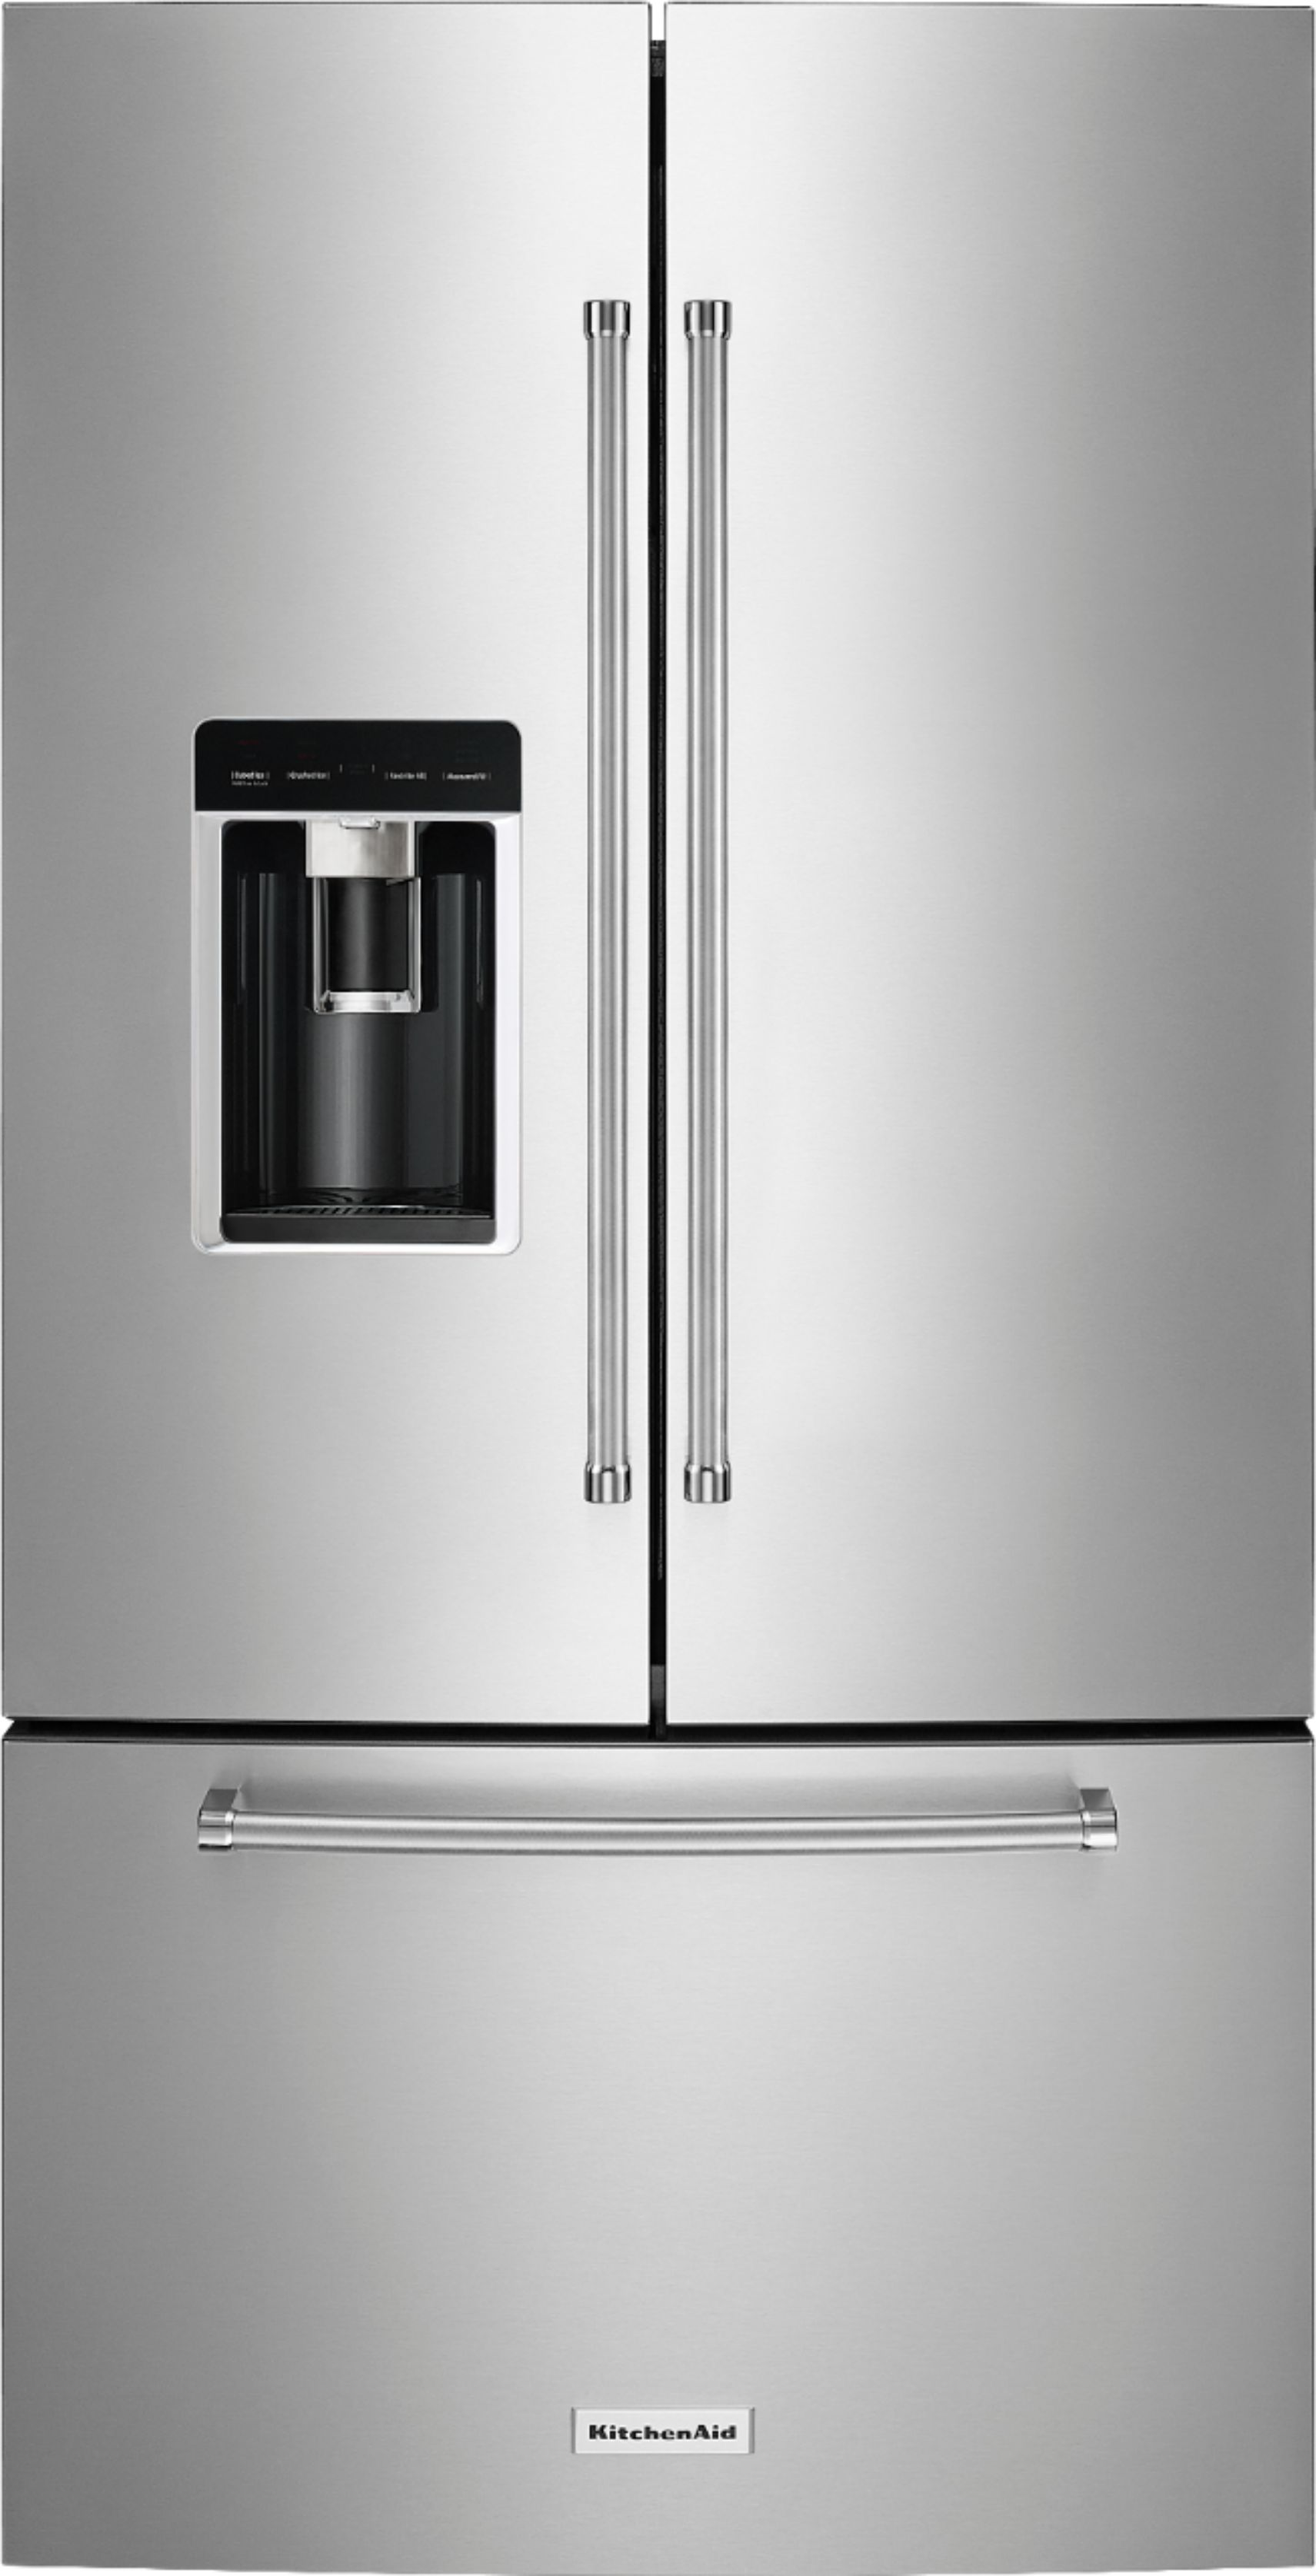 Kitchenaid Krfc300ess Kitchenaid 23 8 Cu Ft French Door Counter Depth Refrigerator Stainless Steel